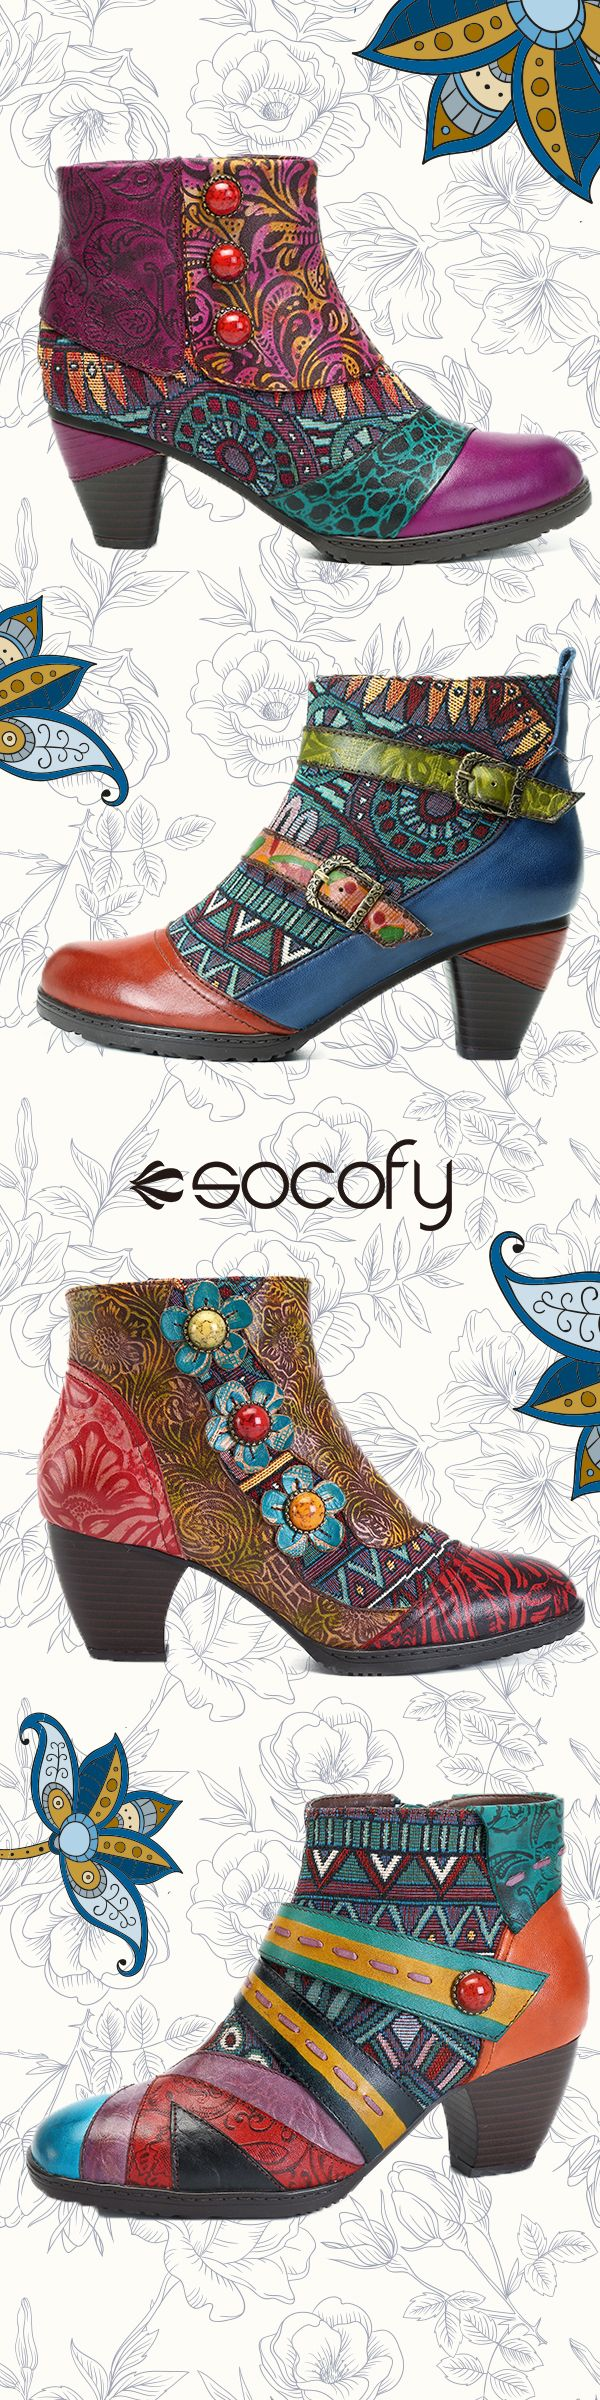 2018 newest fashion handmade Rereo printed leather boots.You deserve better.